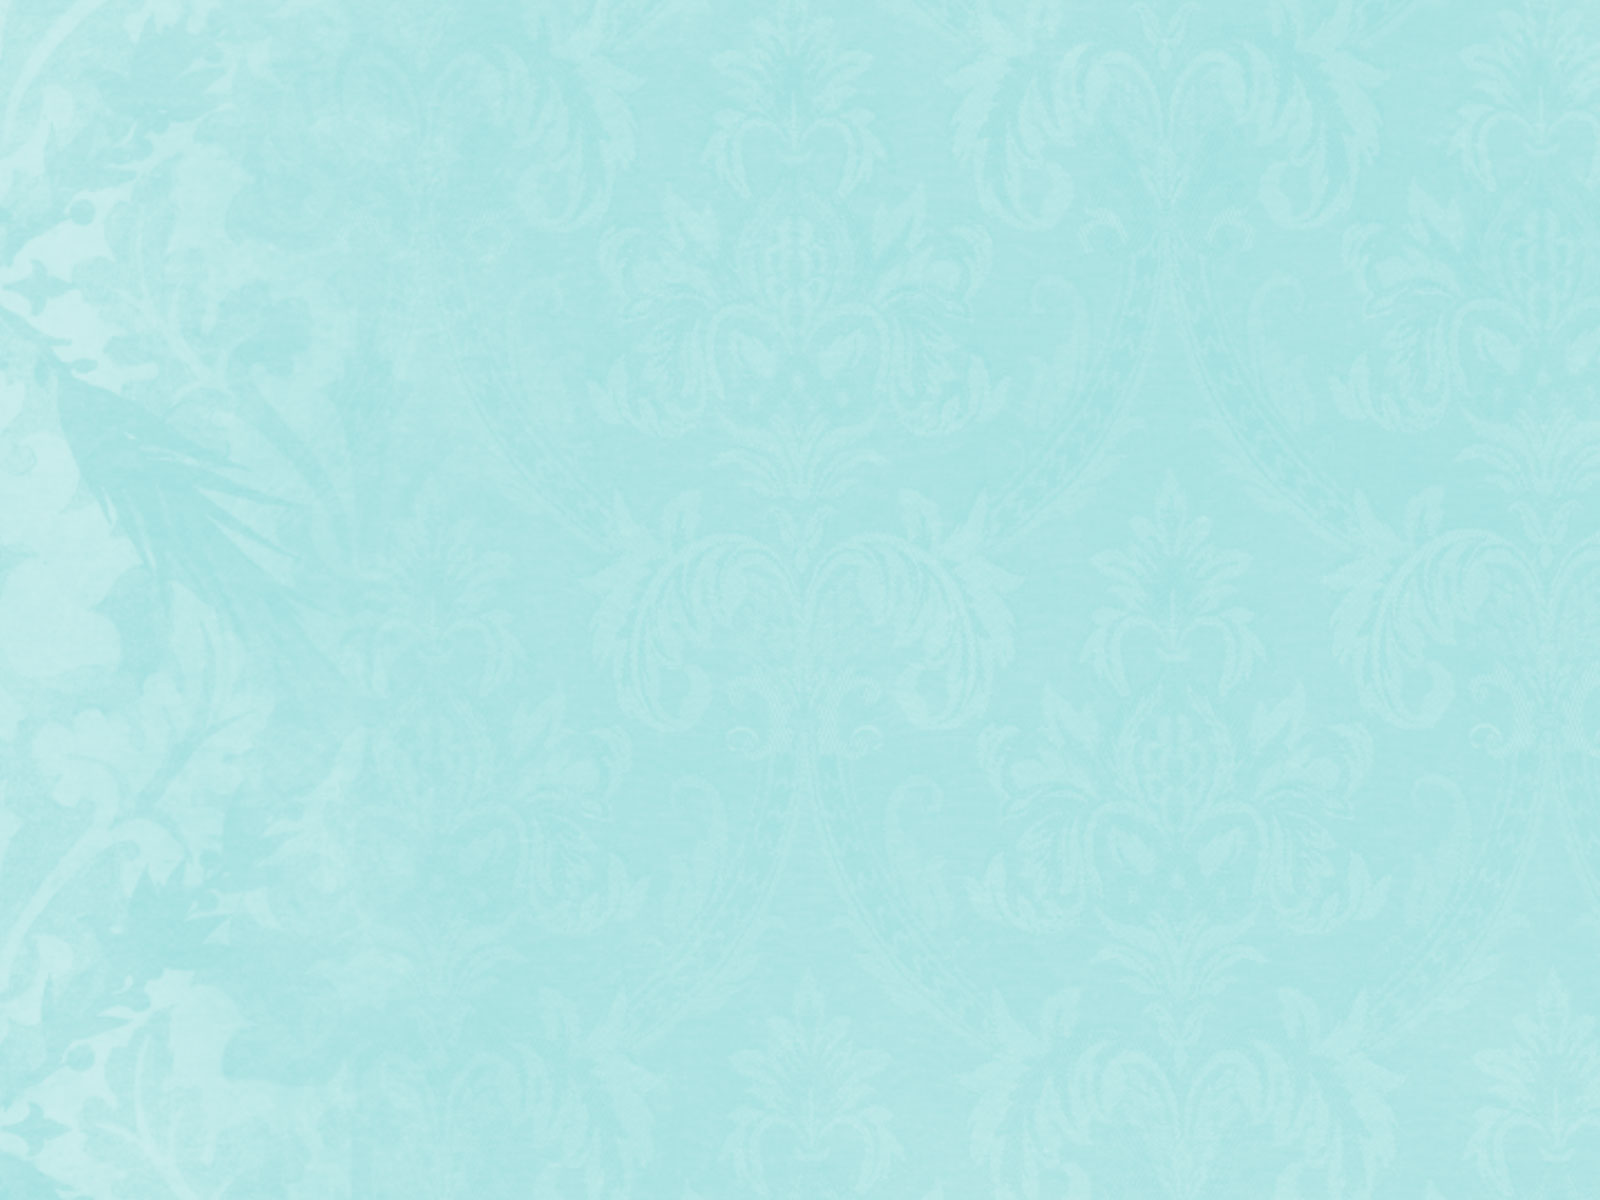 Wedding Website Background Photo